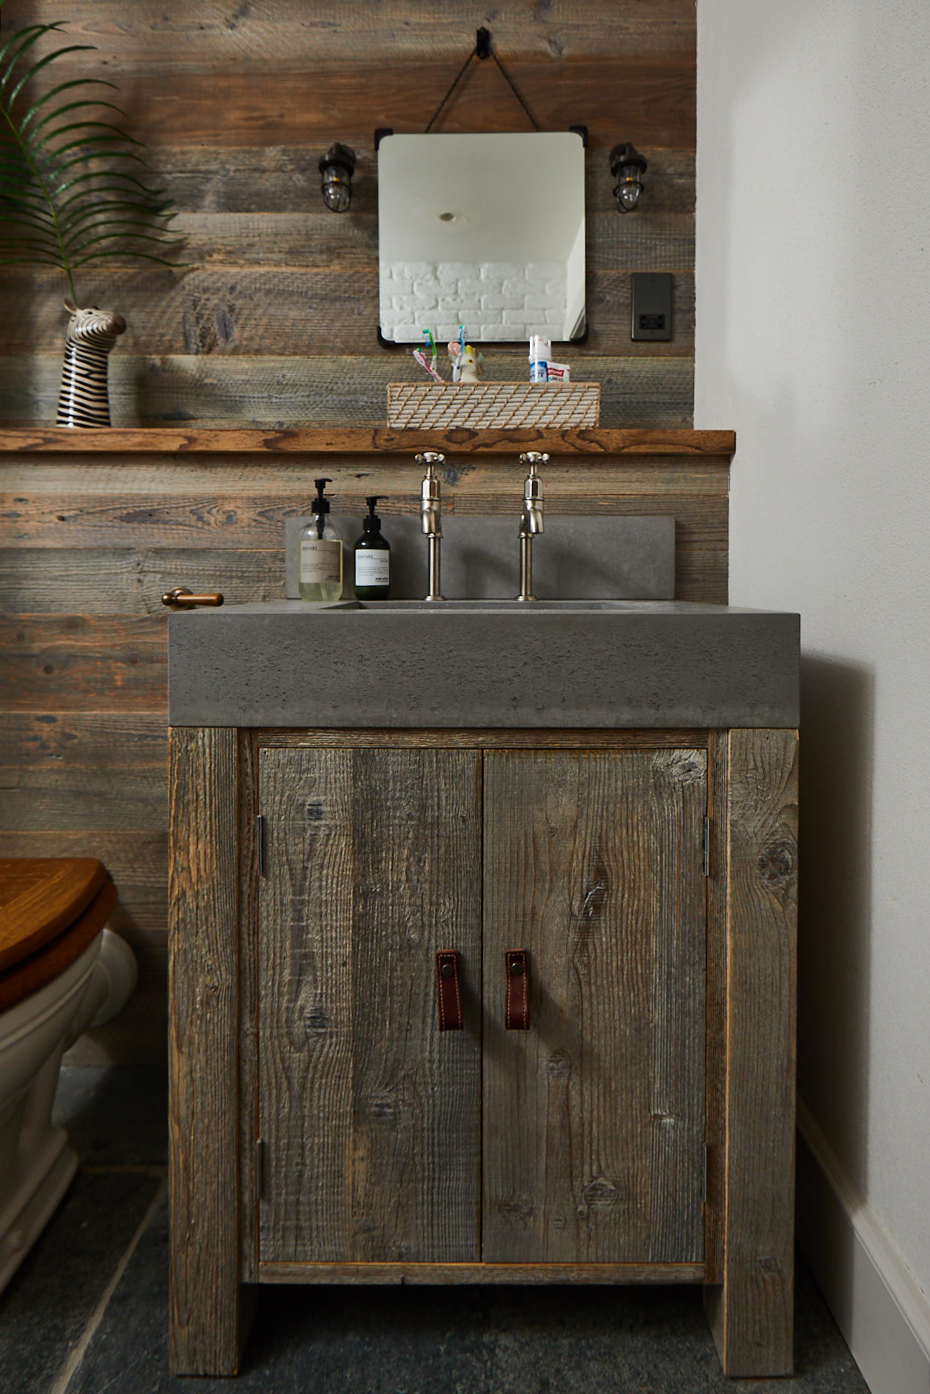 Reclaimed pine vanity unit with solid grey concrete sink